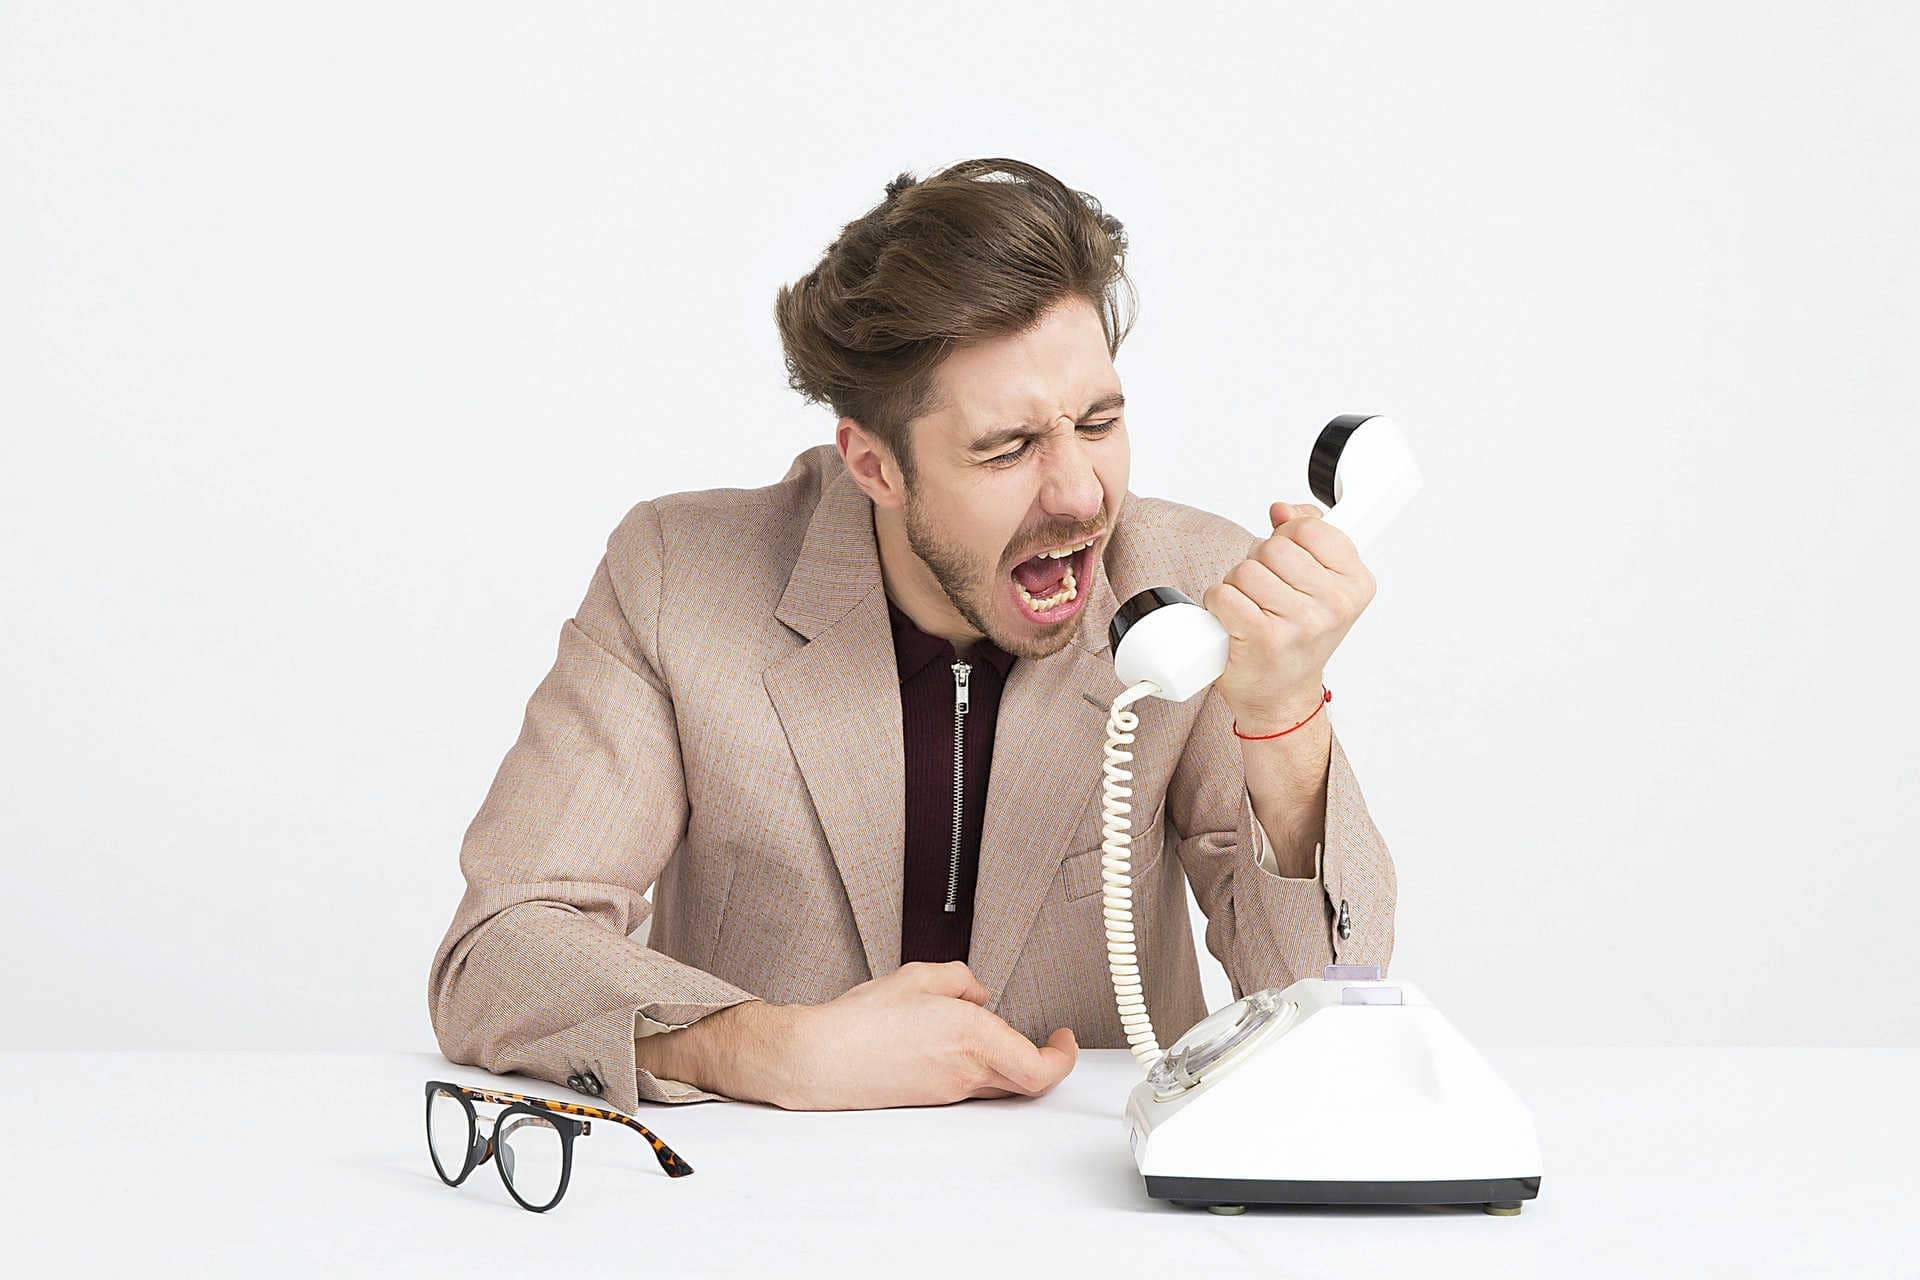 3 tips to stop annoying and fraudulent robocalls